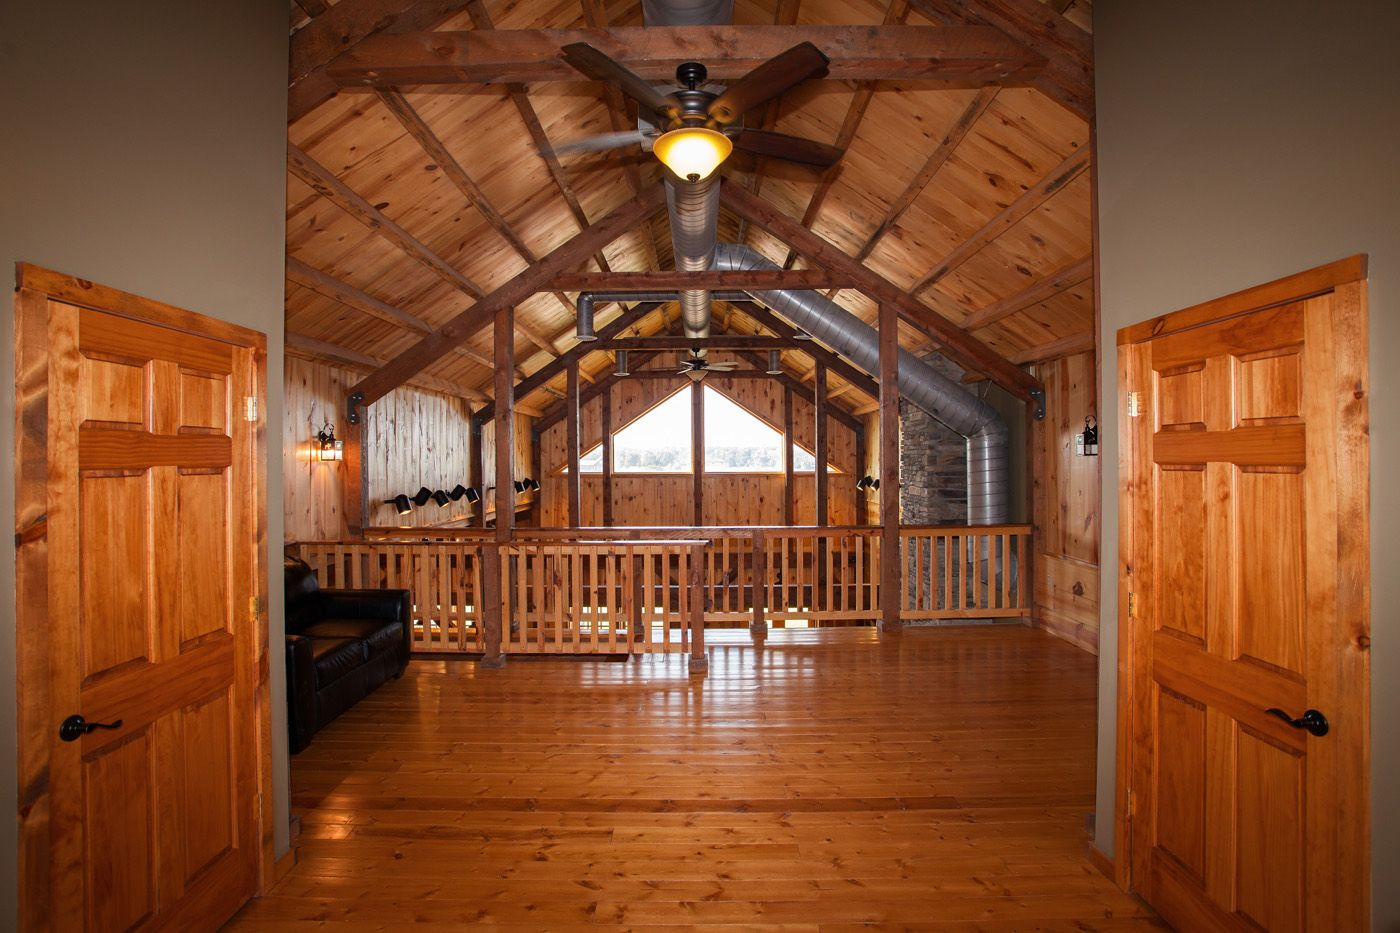 Open Loft Space Cabin Barn Home Sand Creek Post Beam Https Www Facebook Com Sandcreekpostandbeam Barn House Kits Barn House Timber Frame Barn